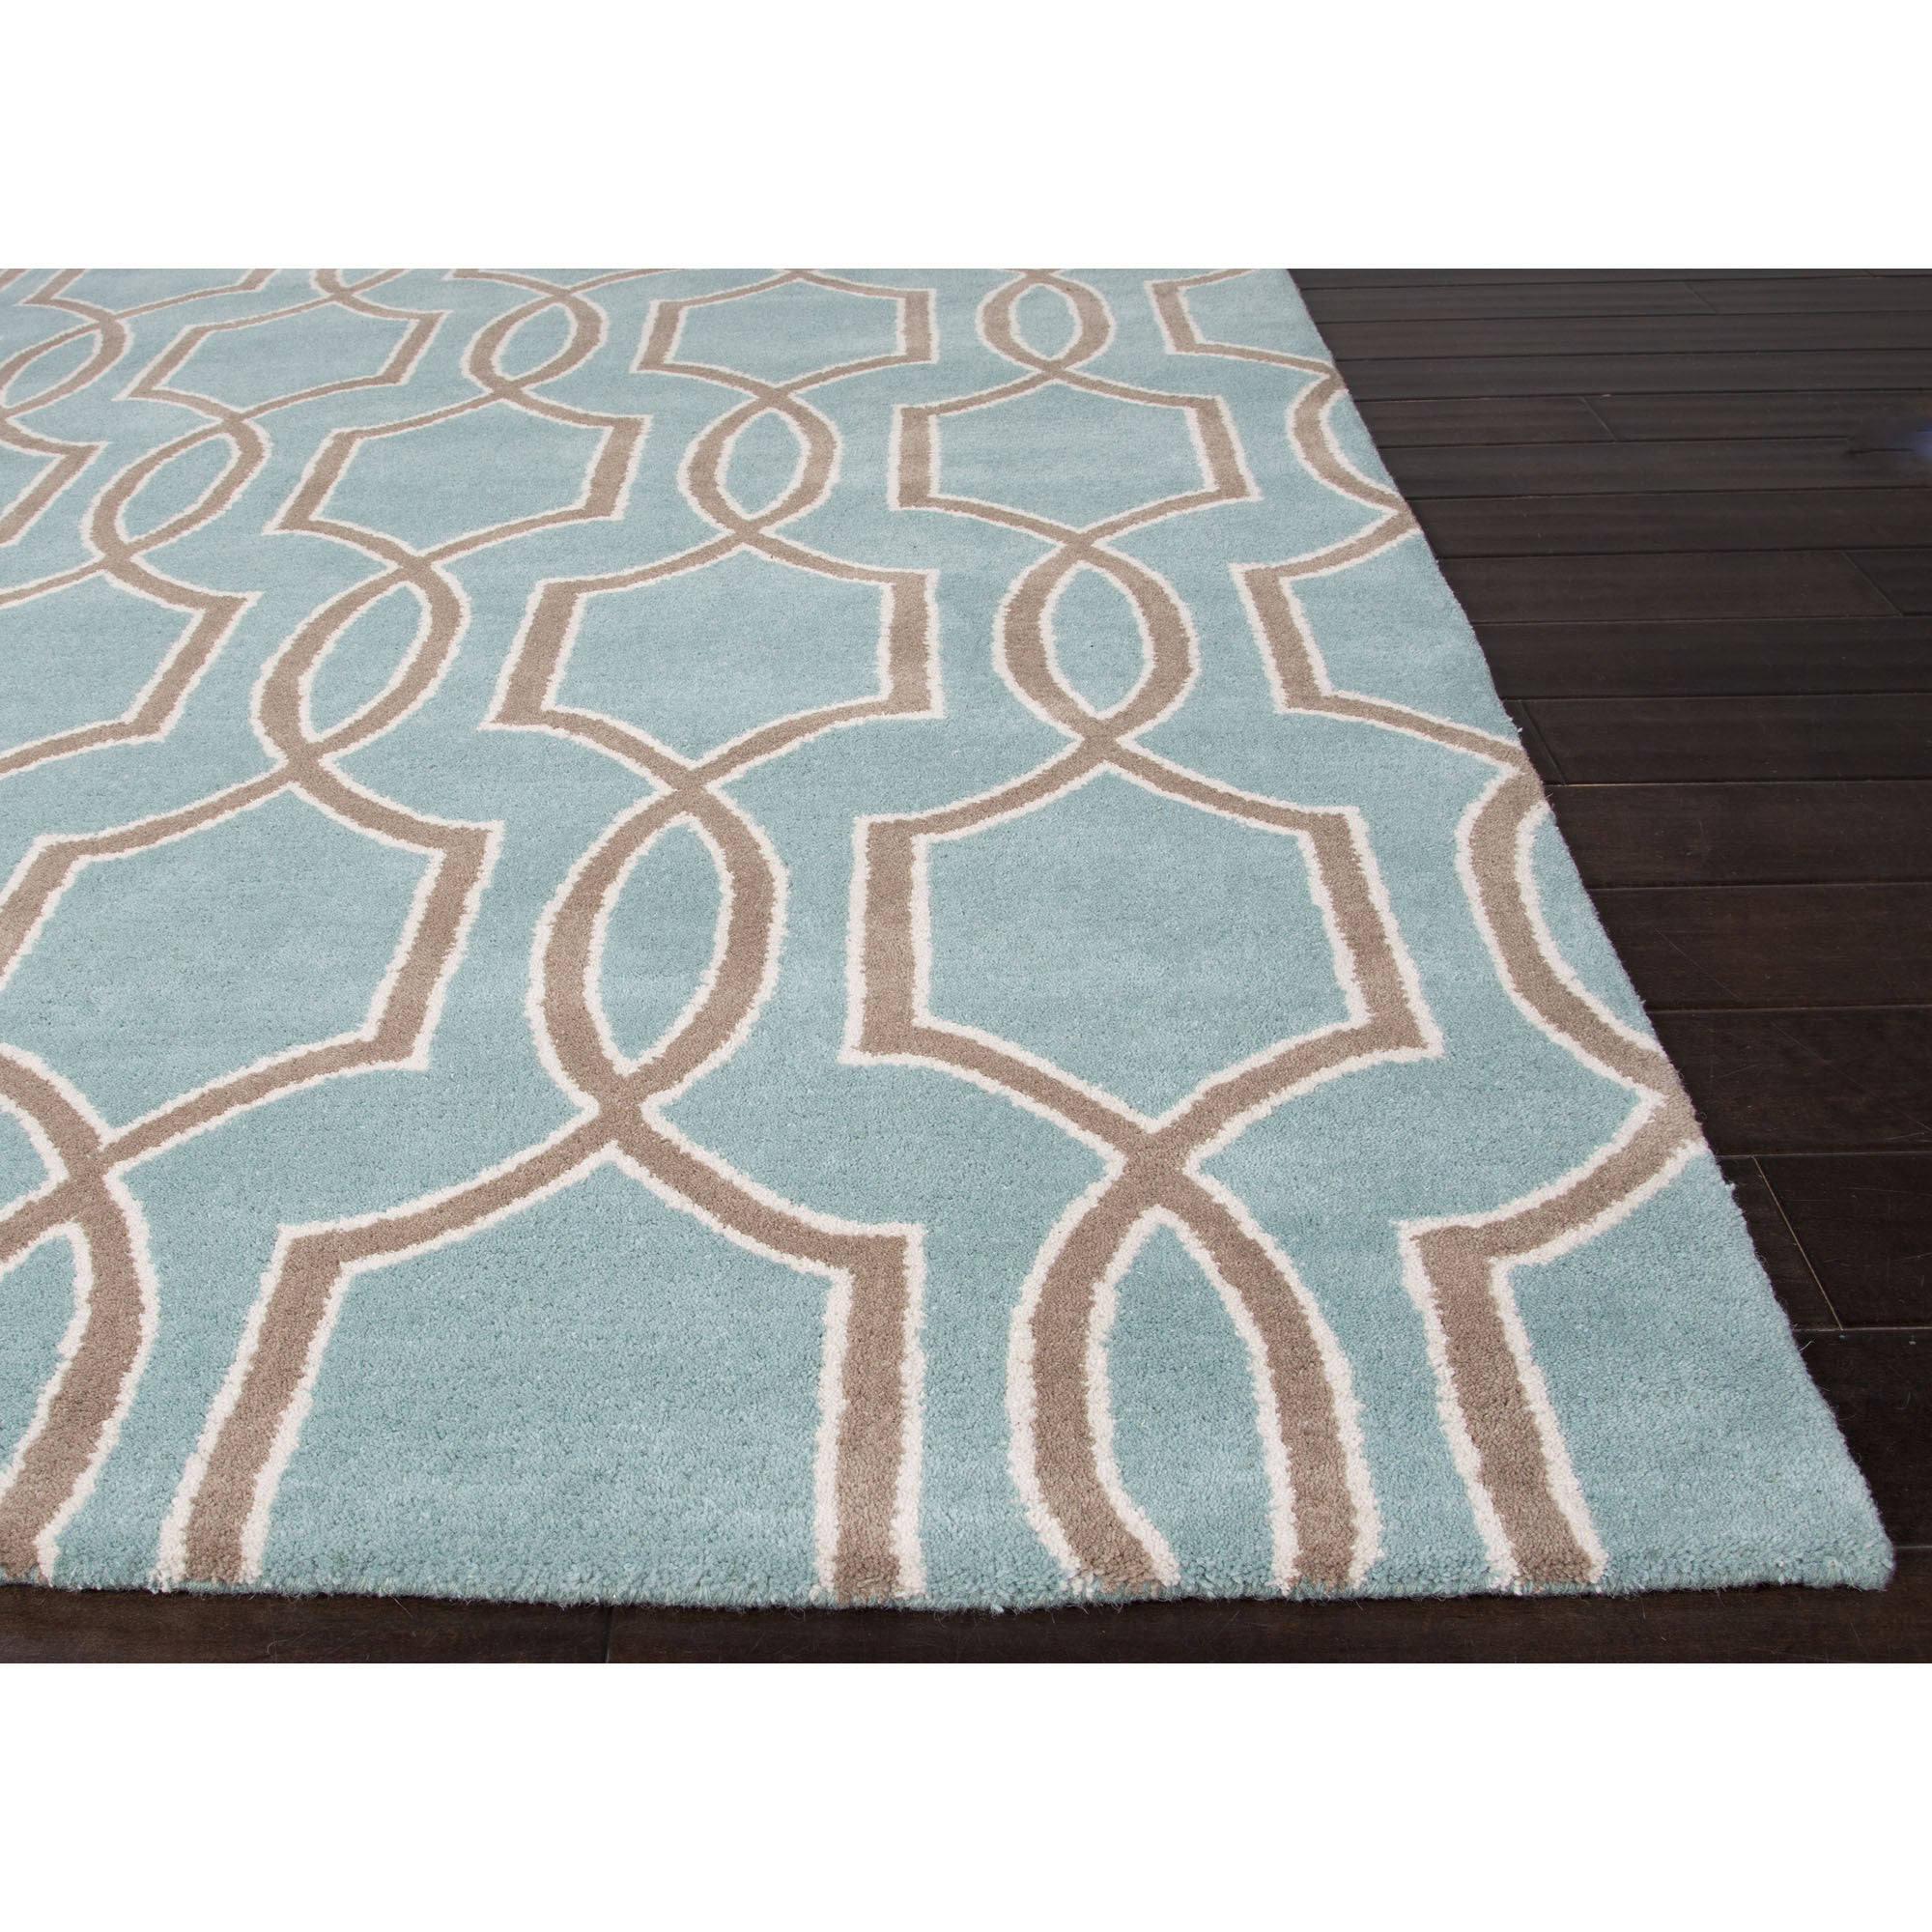 Jaipur rugs modern geometric pattern blue taupe wool area for Modern wool area rugs